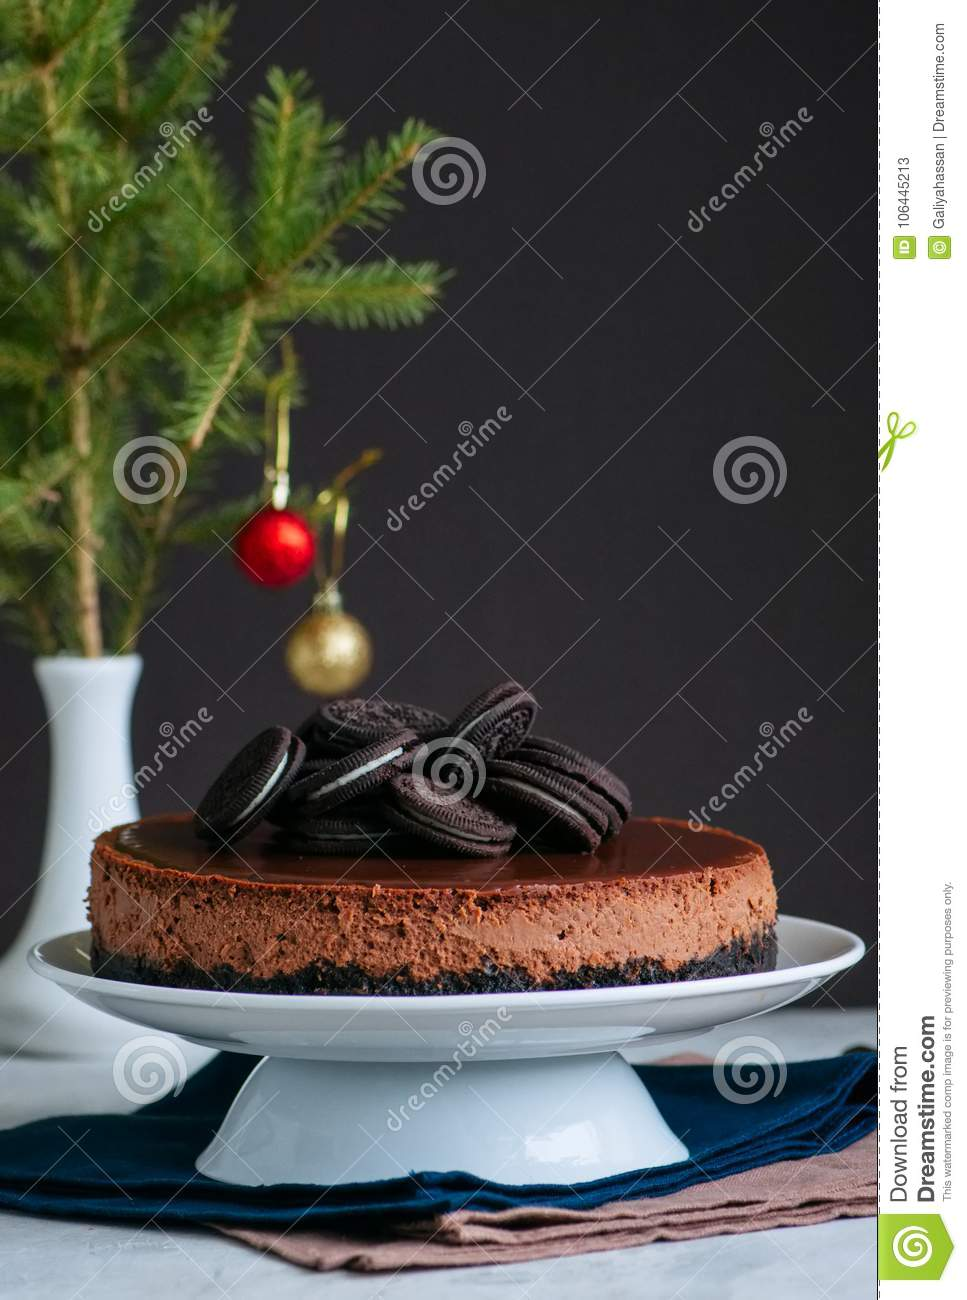 Chocolate cheesecake with cookies on a white plate. Festive baking.